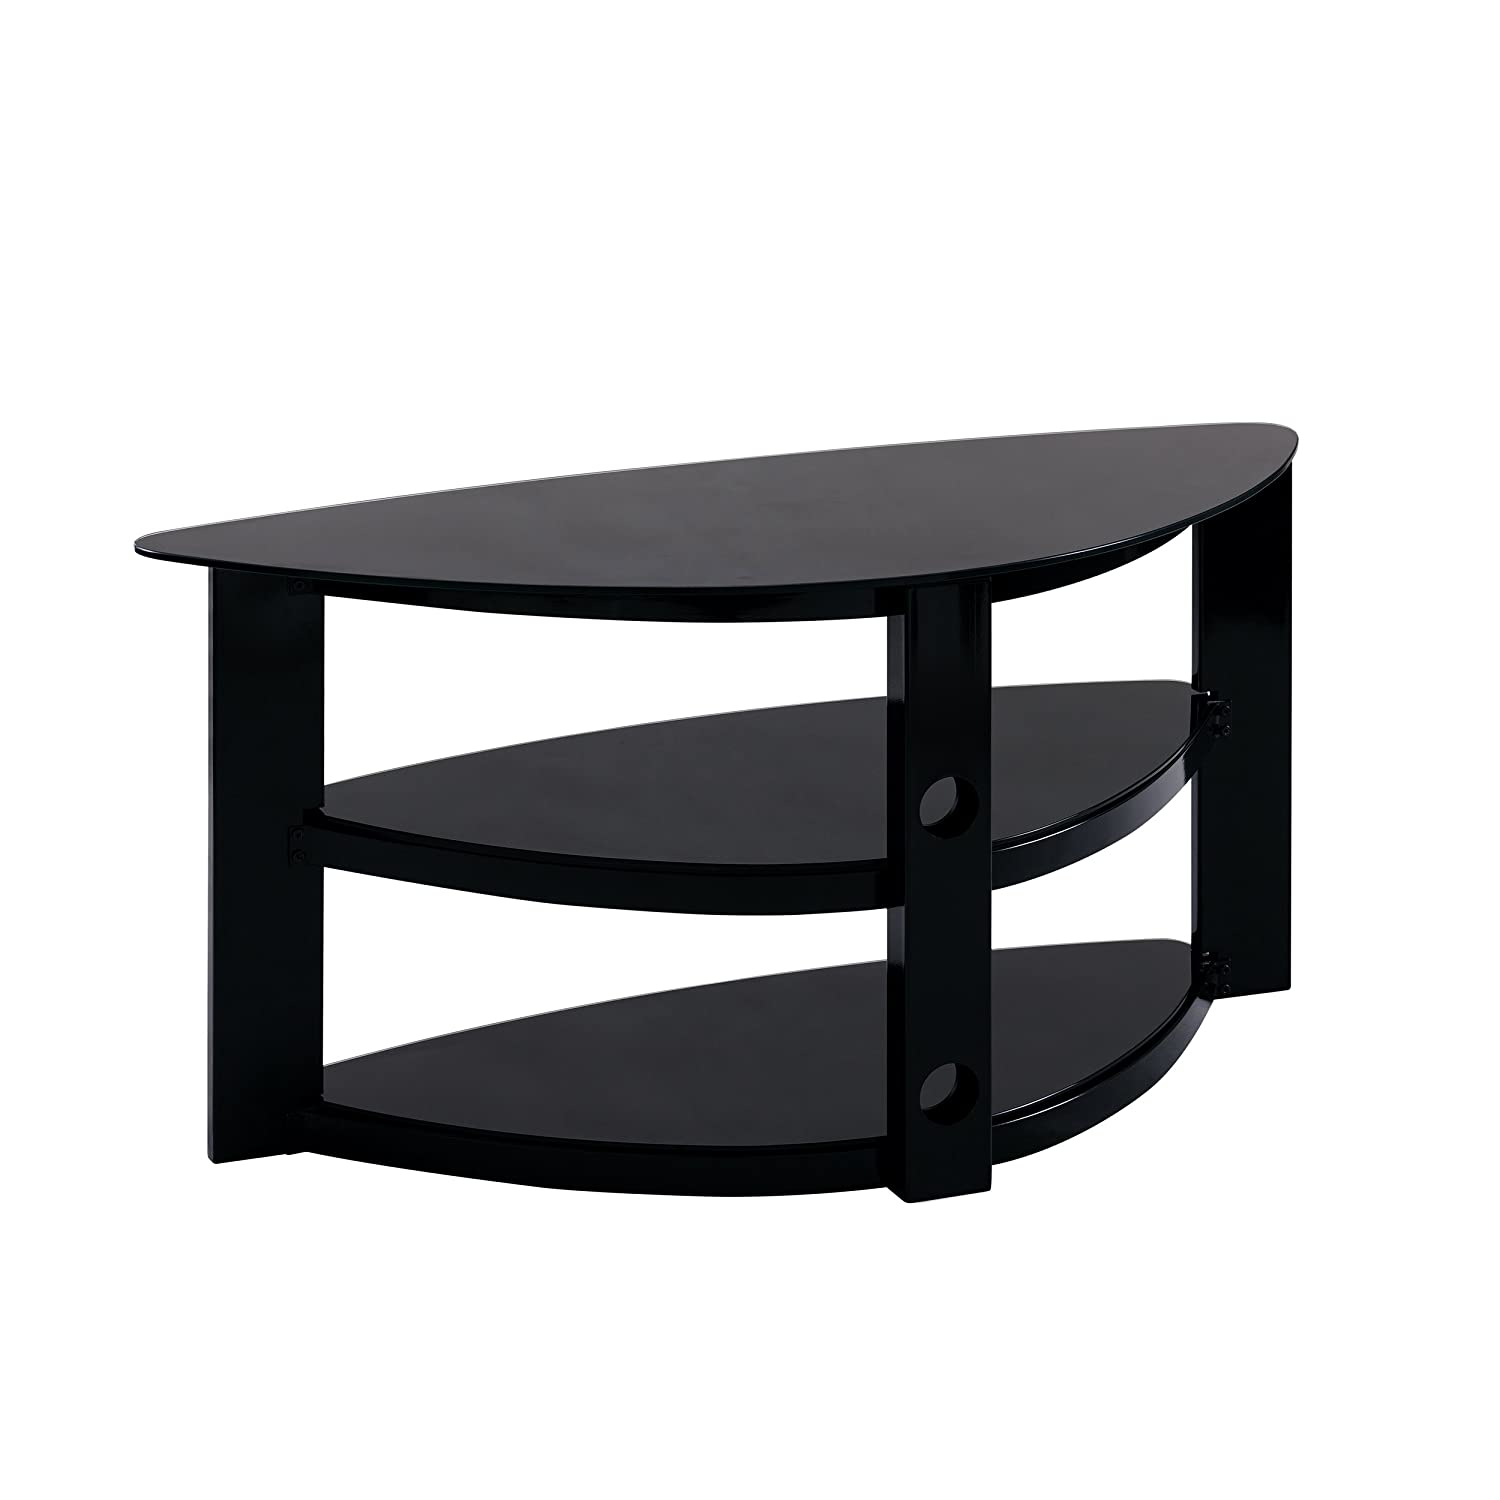 gaming tv stand Amazon.com: Furniture HotSpot Black Corner TV Stand-Gaming TV Stand:  Kitchen u0026 Dining